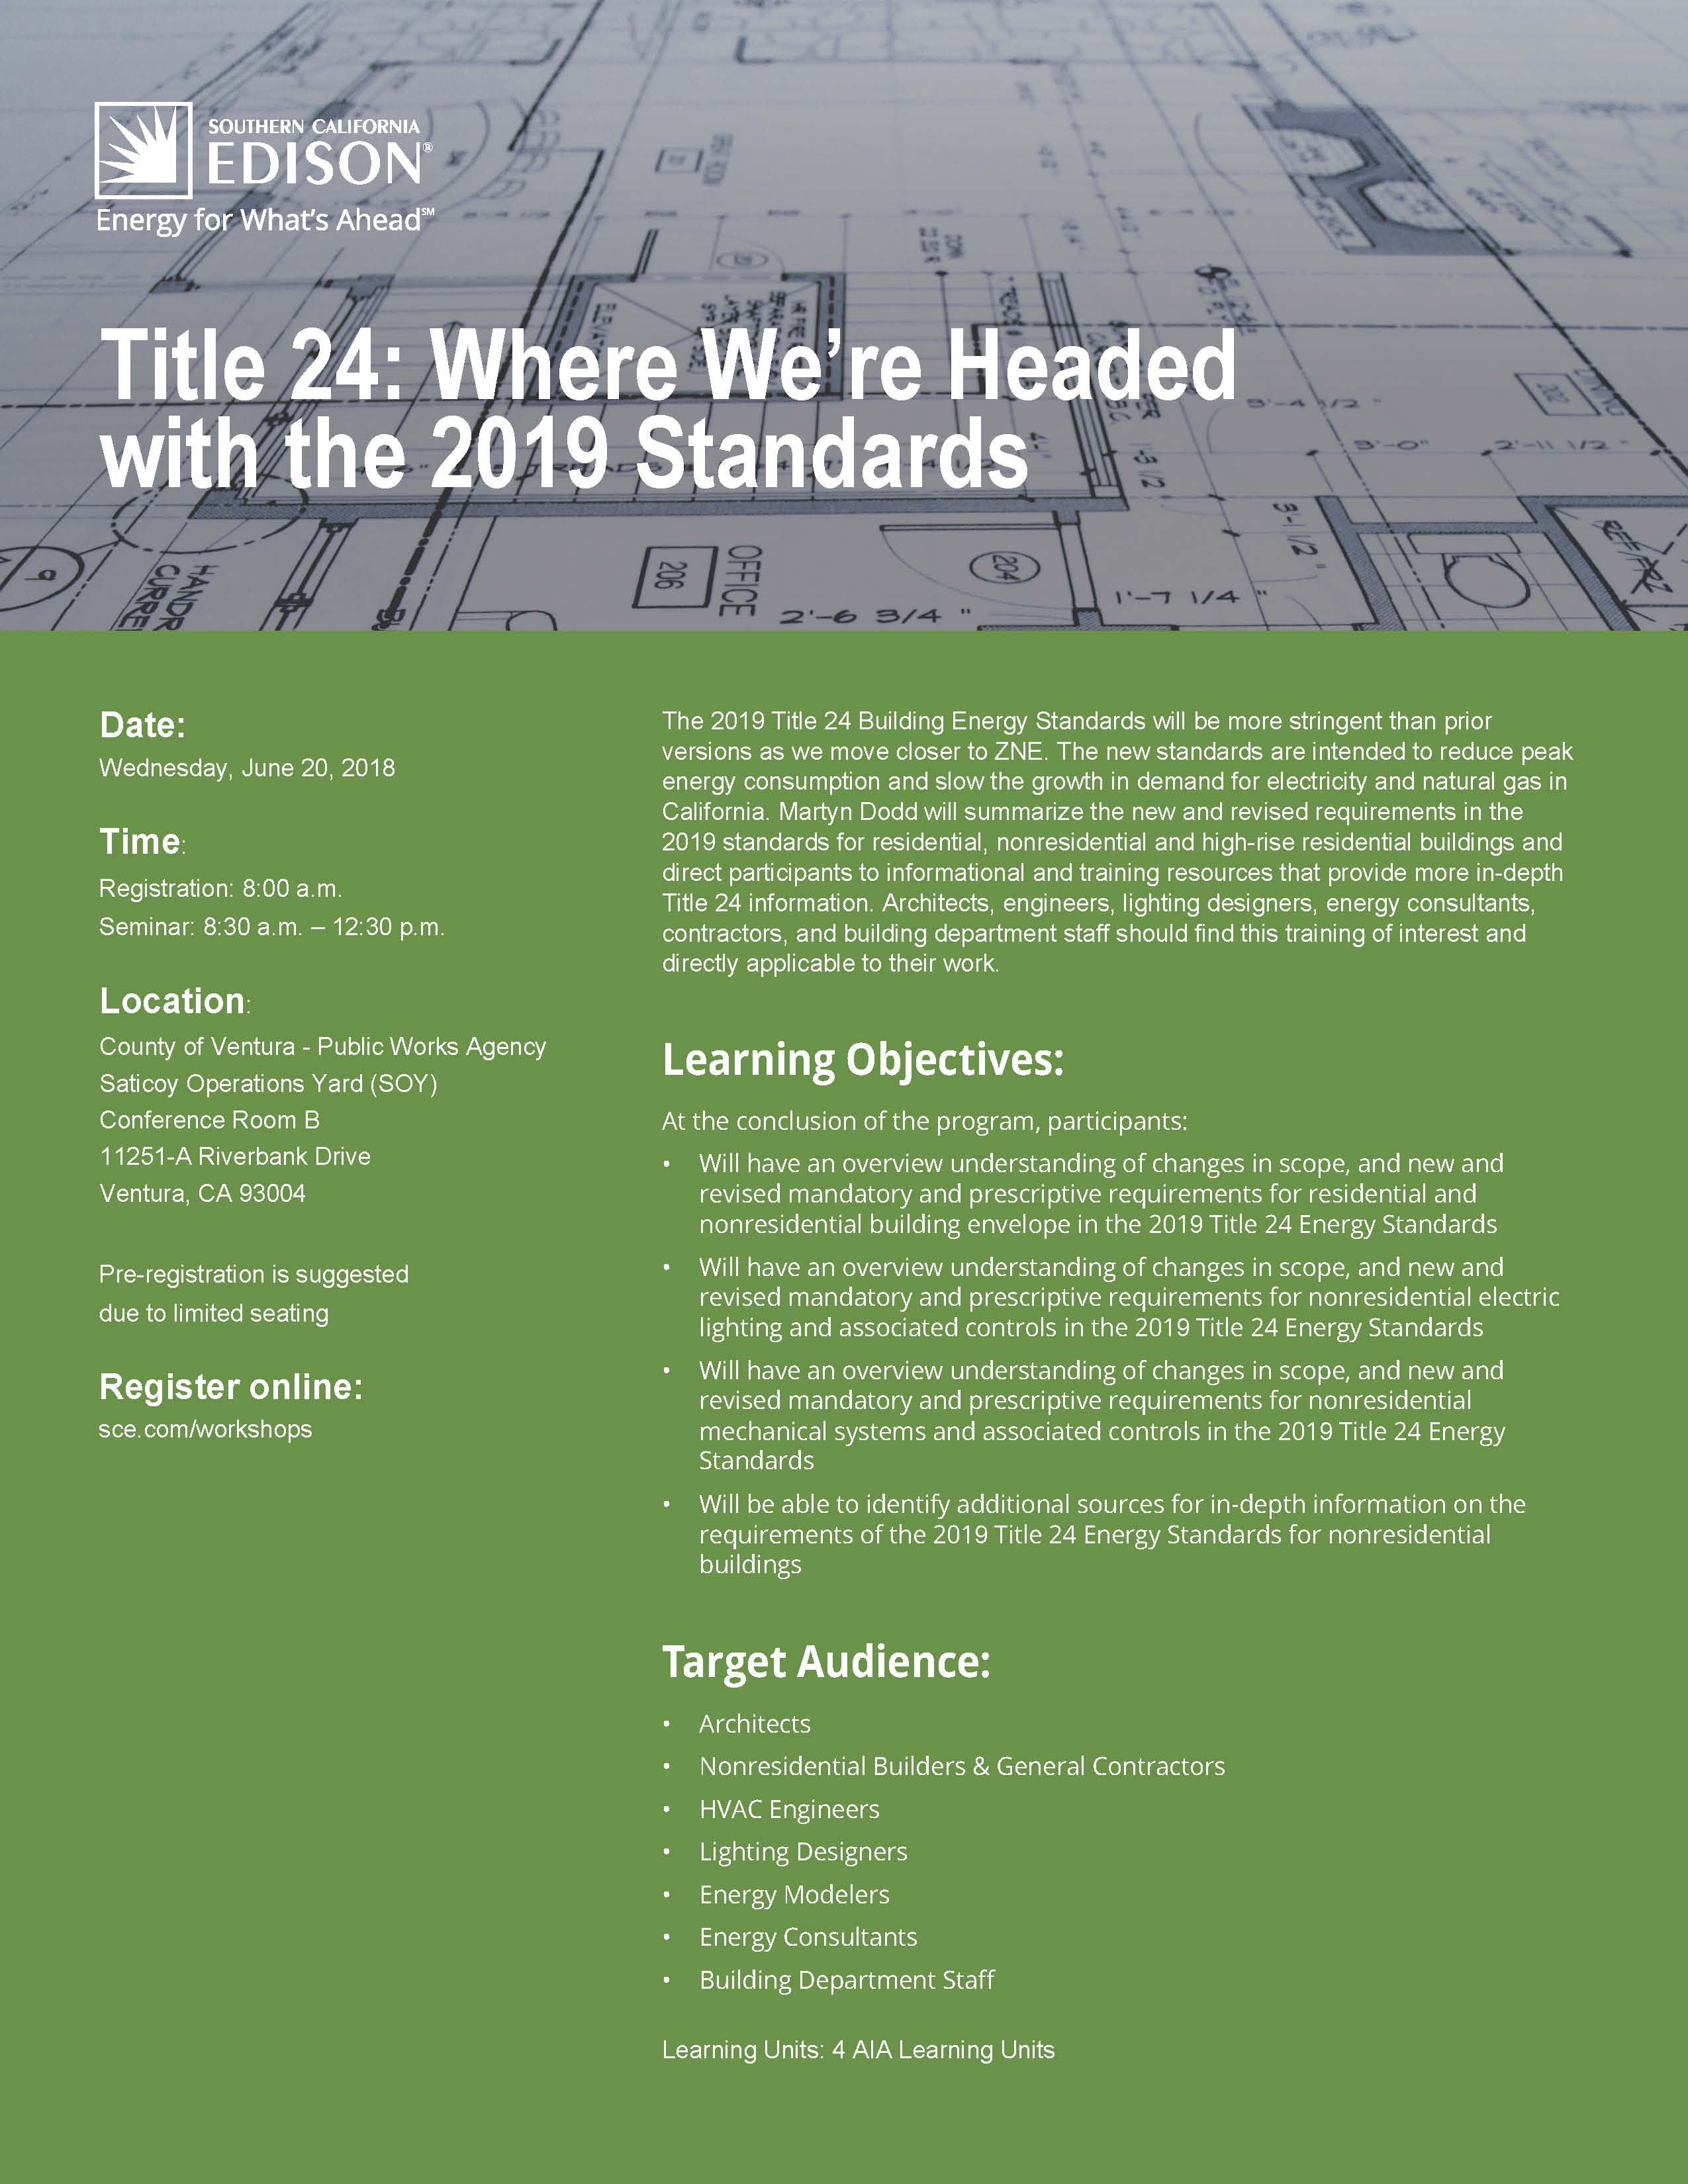 ... Training Resources That Provide More In Depth Title 24 Information.  Architects, Engineers, Lighting Designers, Energy Consultants, Contractors,  ...